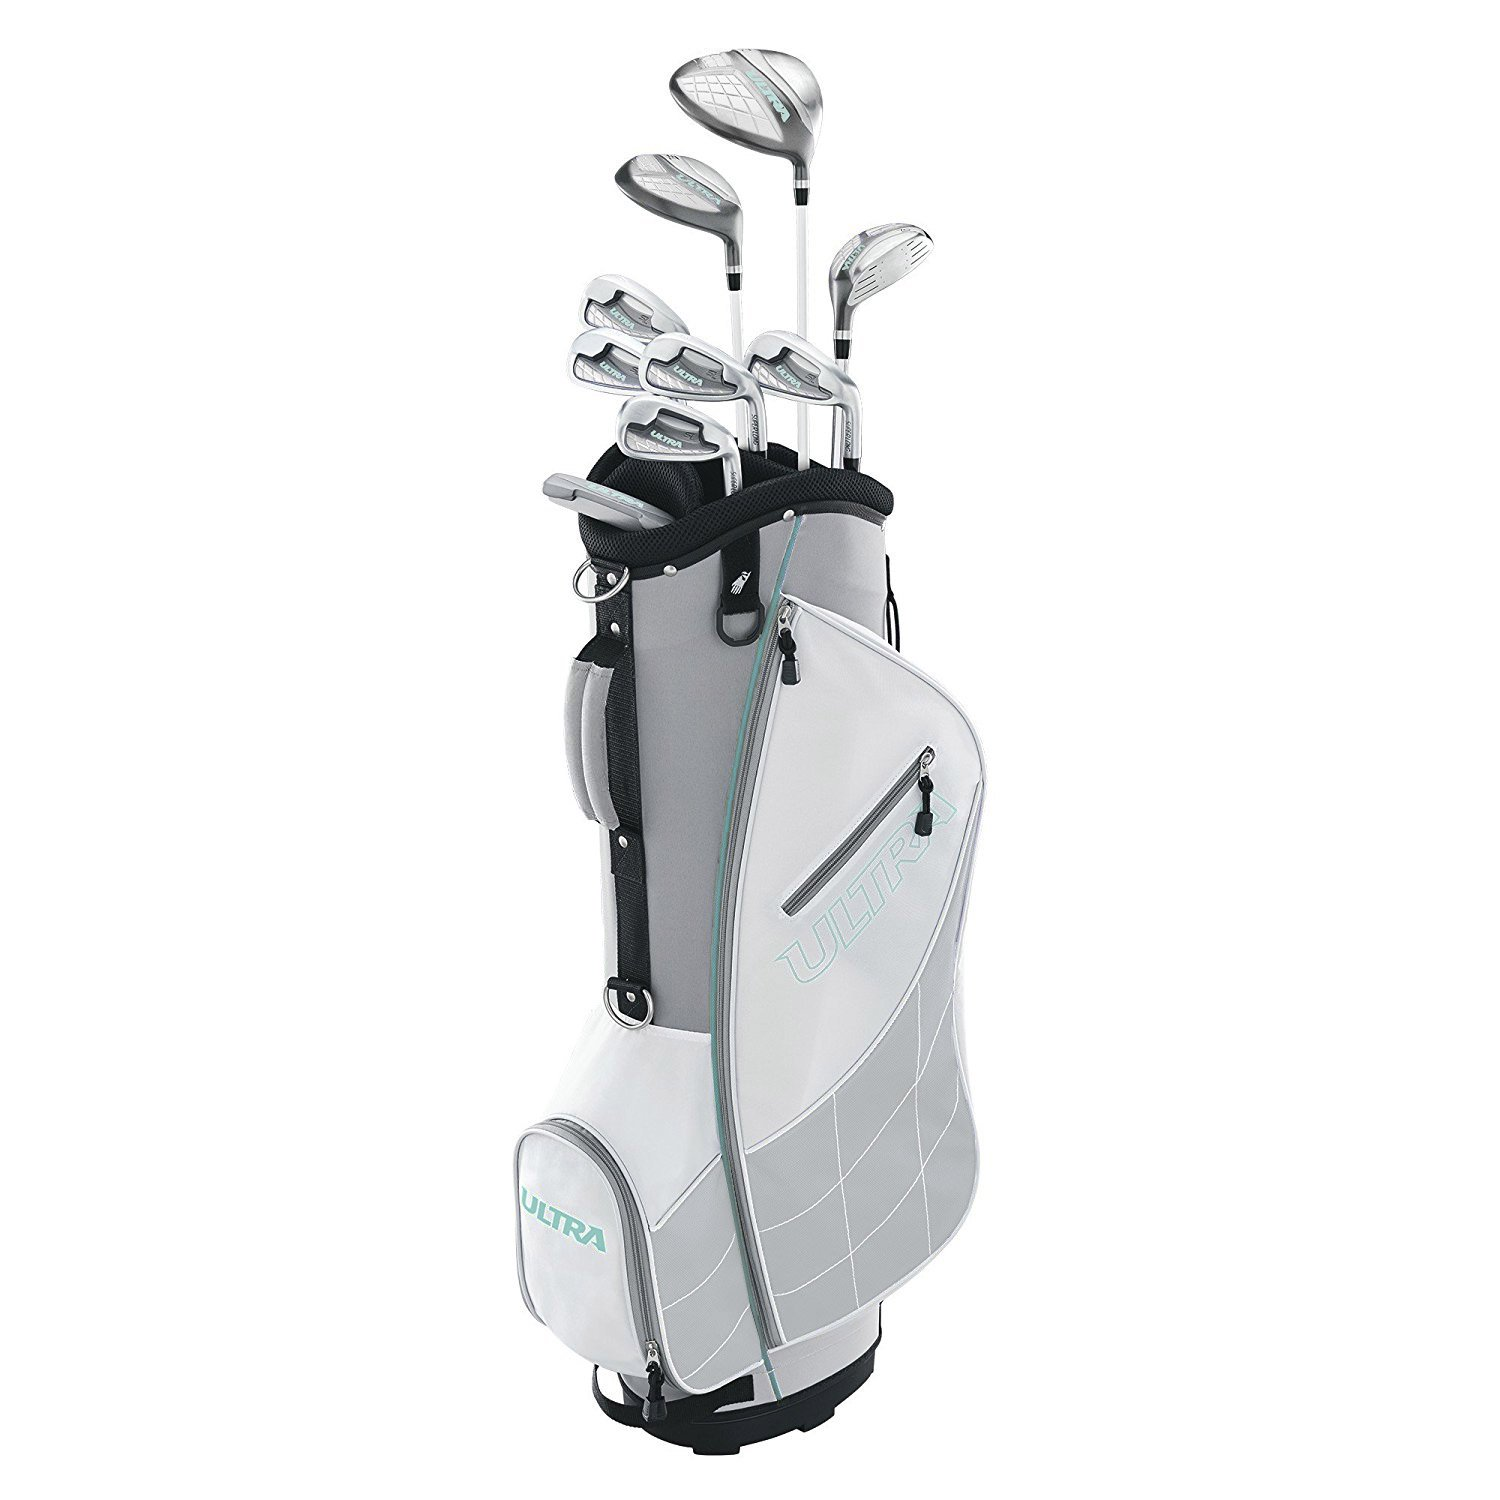 Wilson Ultra Womens Right Handed Complete Golf Club Set with Cart Bag, Gray Mint by Wilson